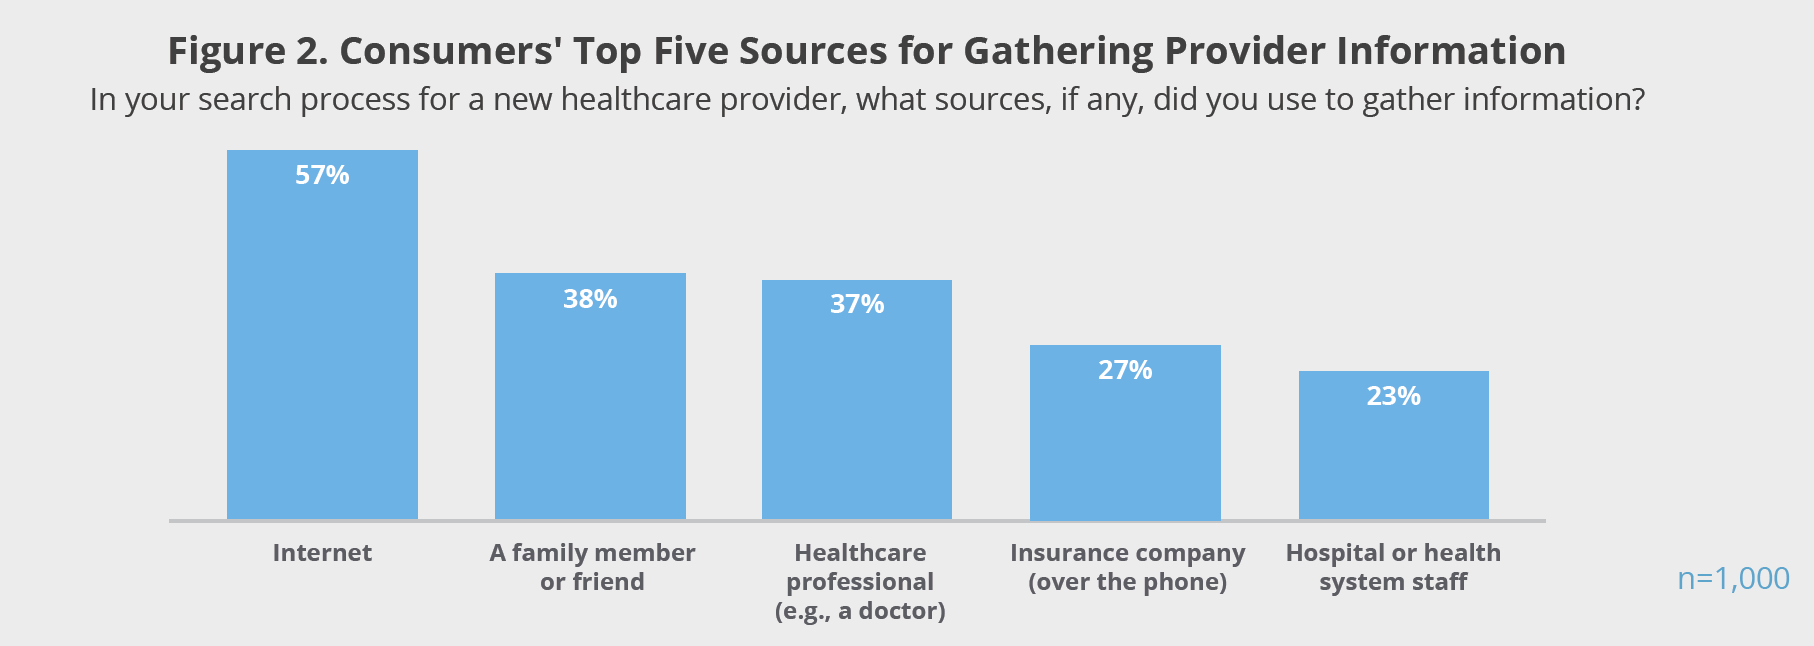 Figure 2. Consumers' Top Five Sources for Gathering Provider Information